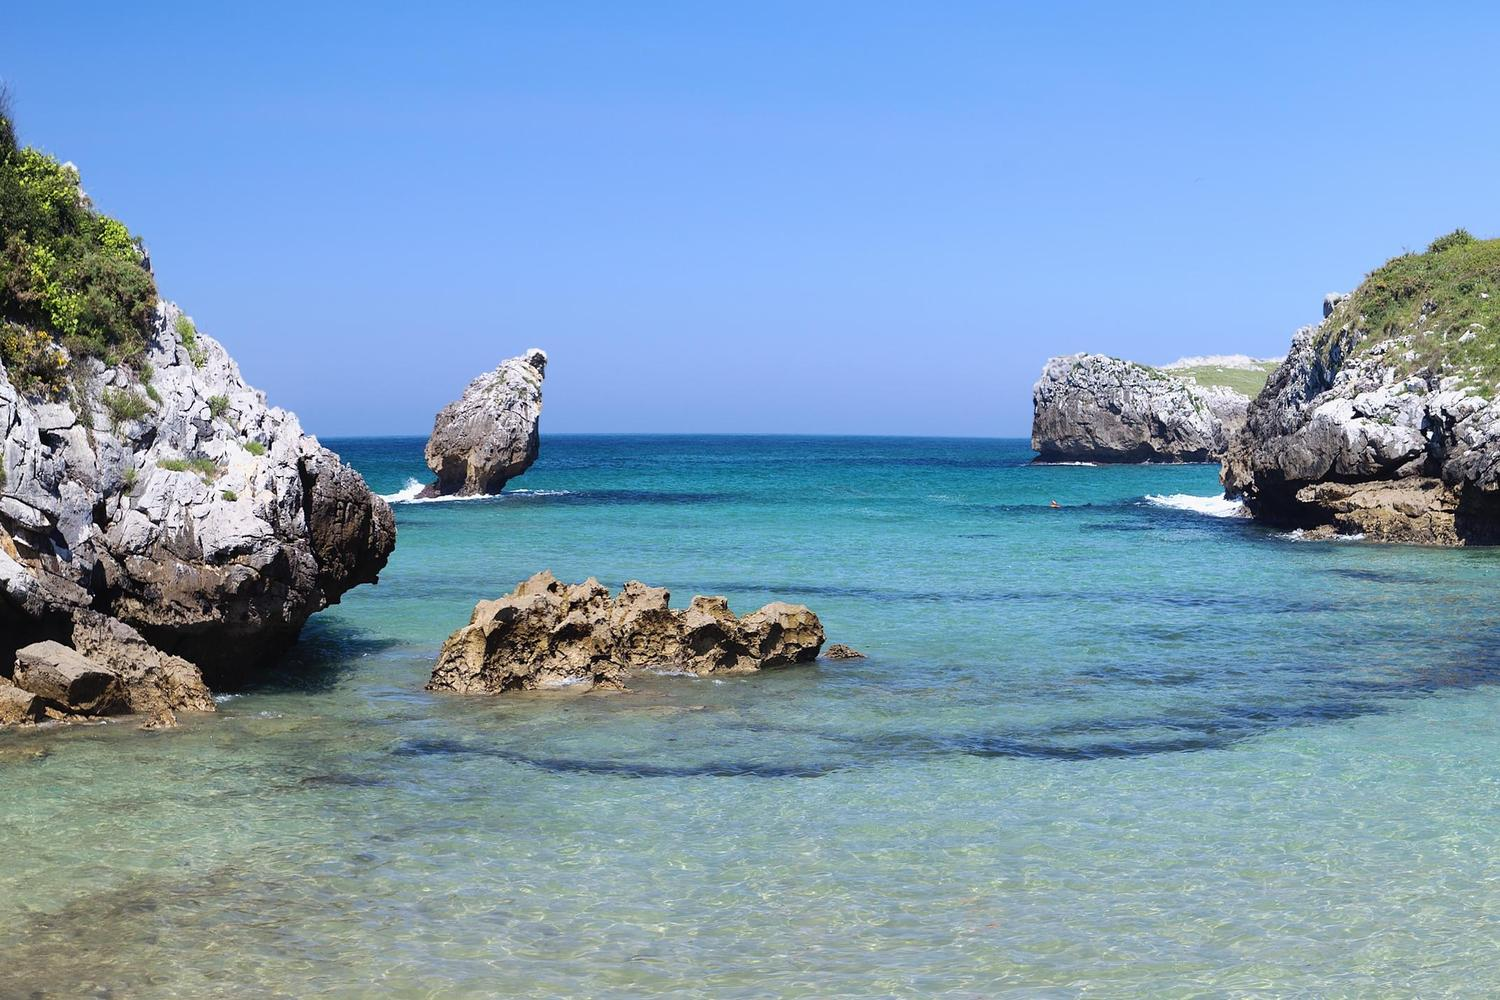 Beach near Llanes on the coast of the Picos de Europa